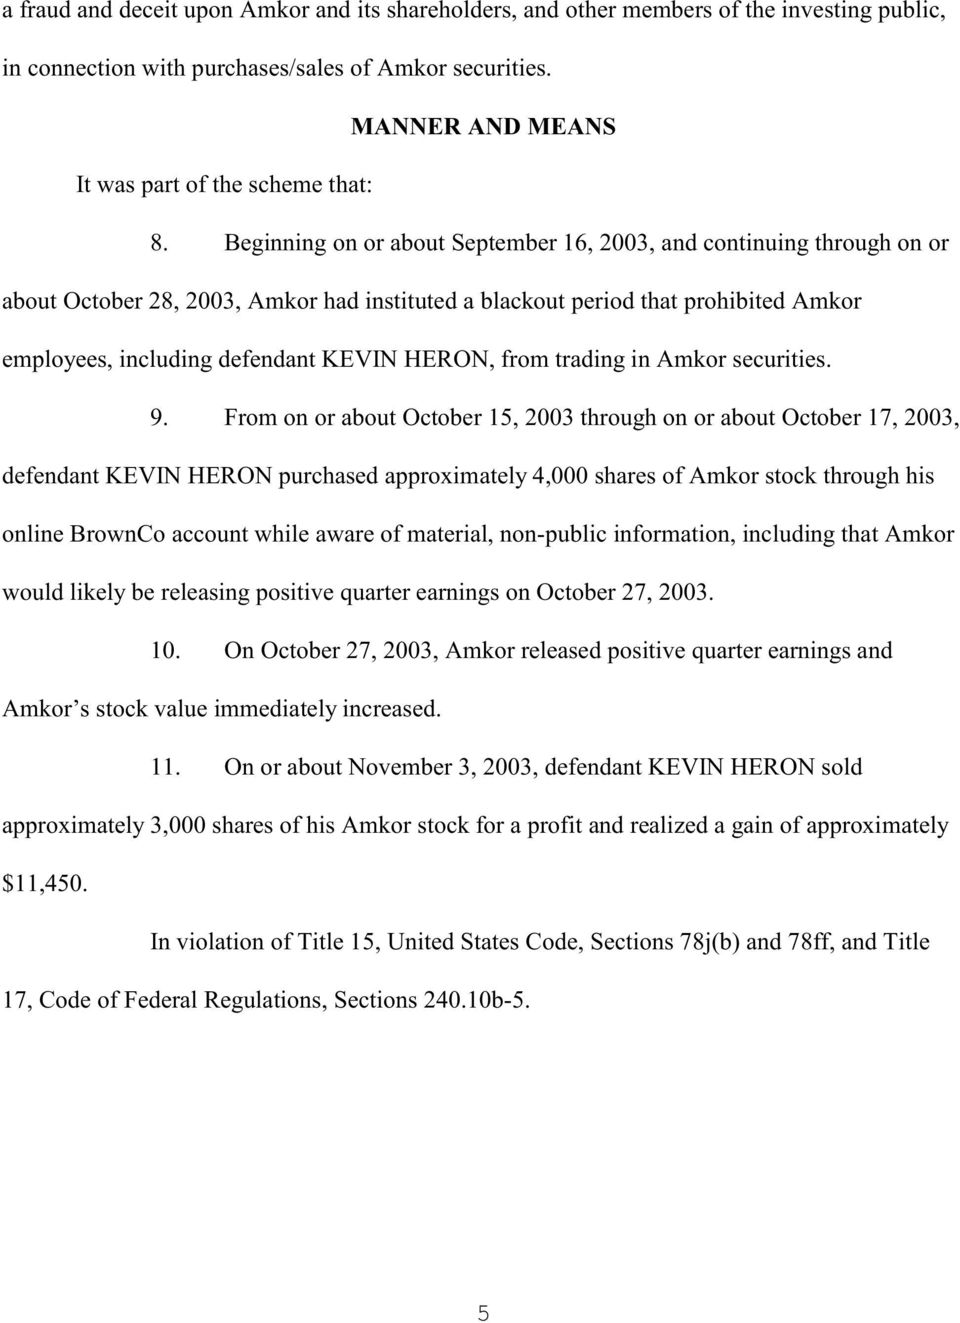 Beginning on or about September 16, 2003, and continuing through on or about October 28, 2003, Amkor had instituted a blackout period that prohibited Amkor employees, including defendant KEVIN HERON,